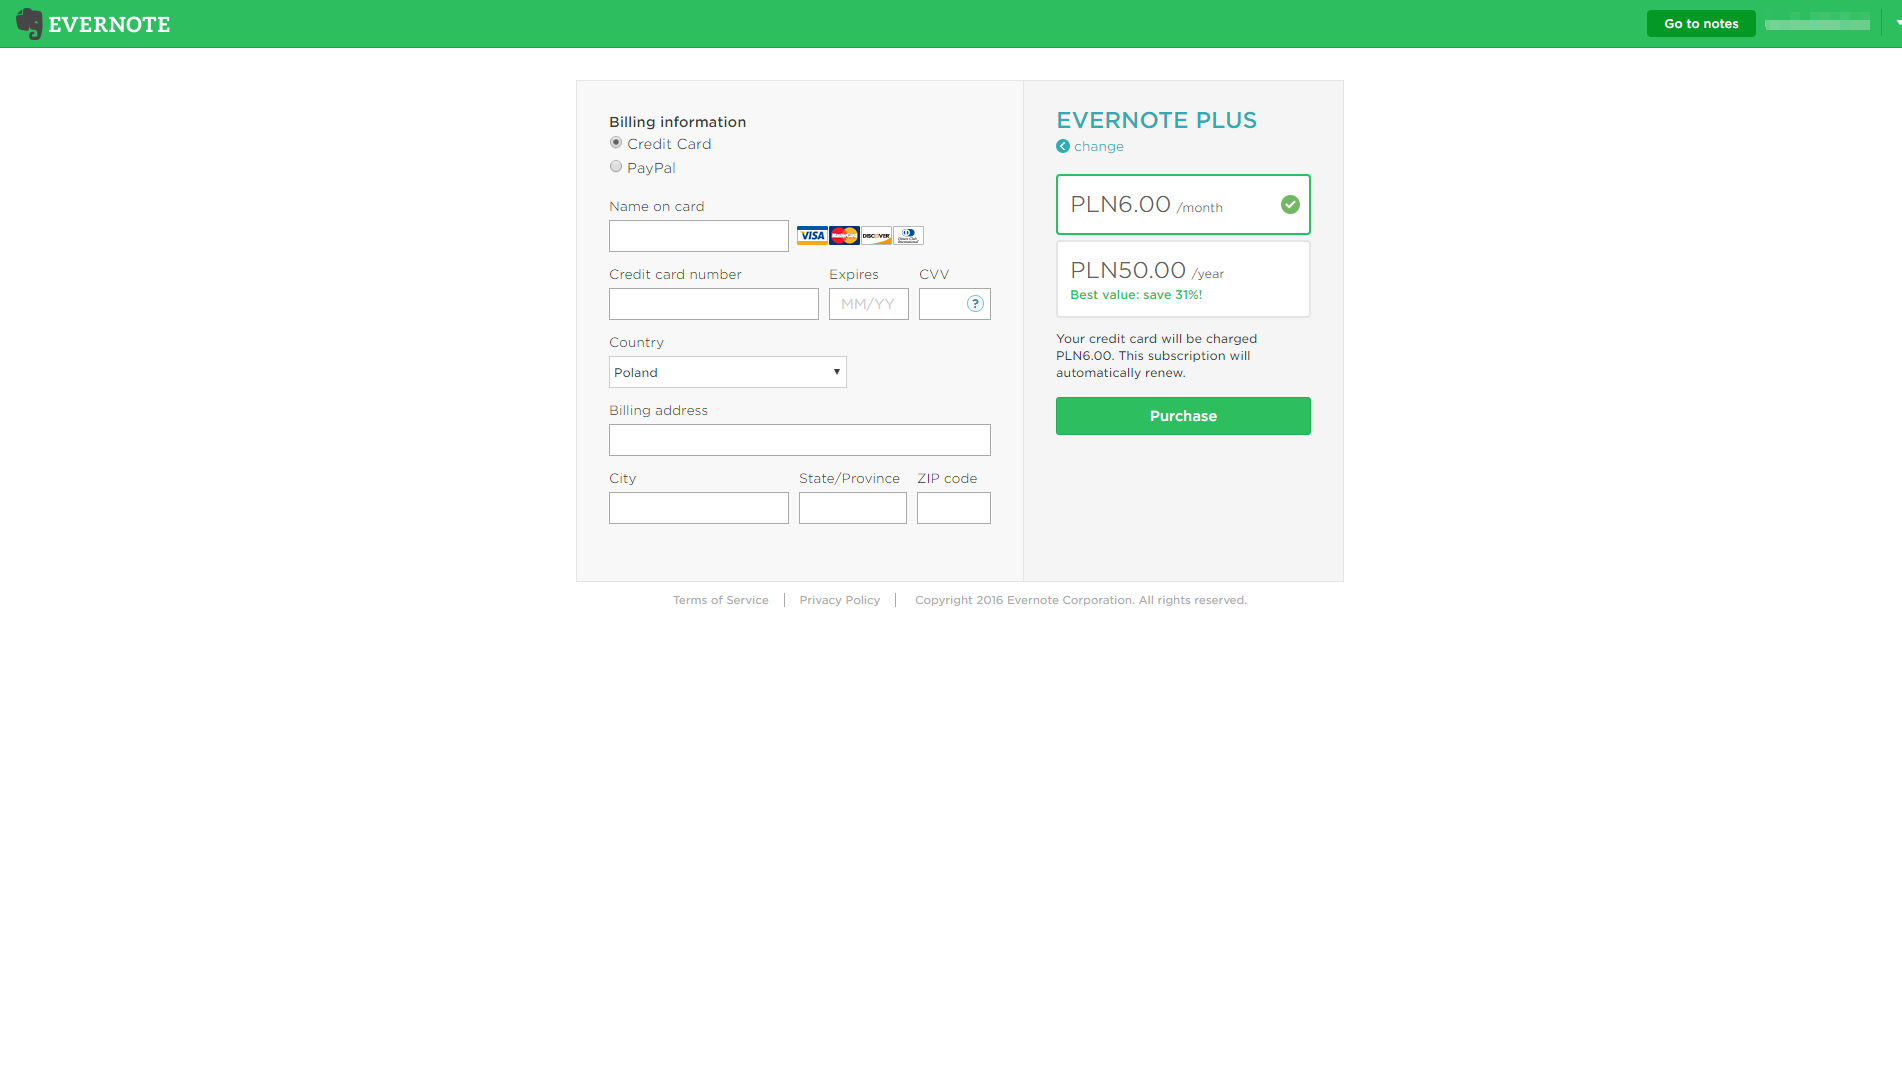 Evernote - SaaS Payment Form